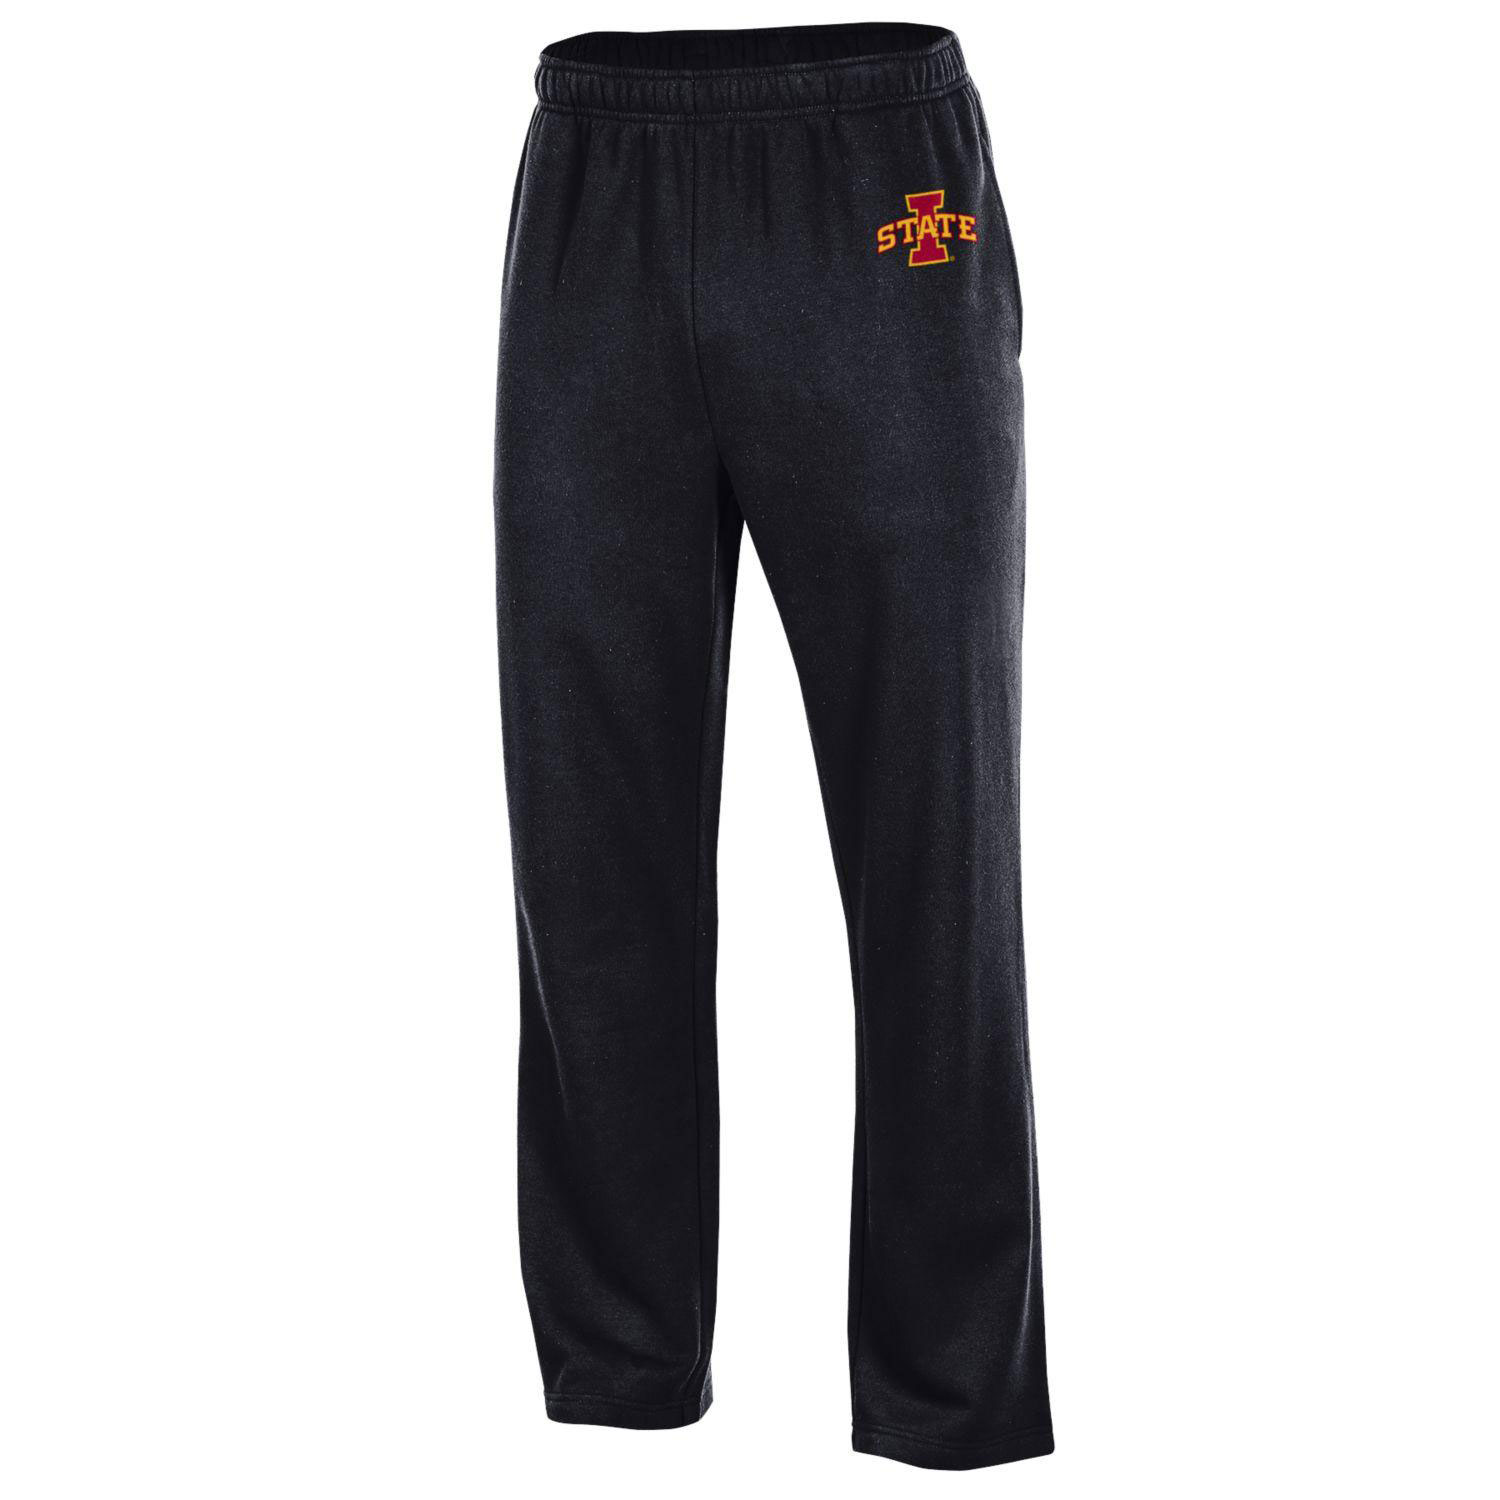 Image For Gear For Sports® I-State Sweatpants